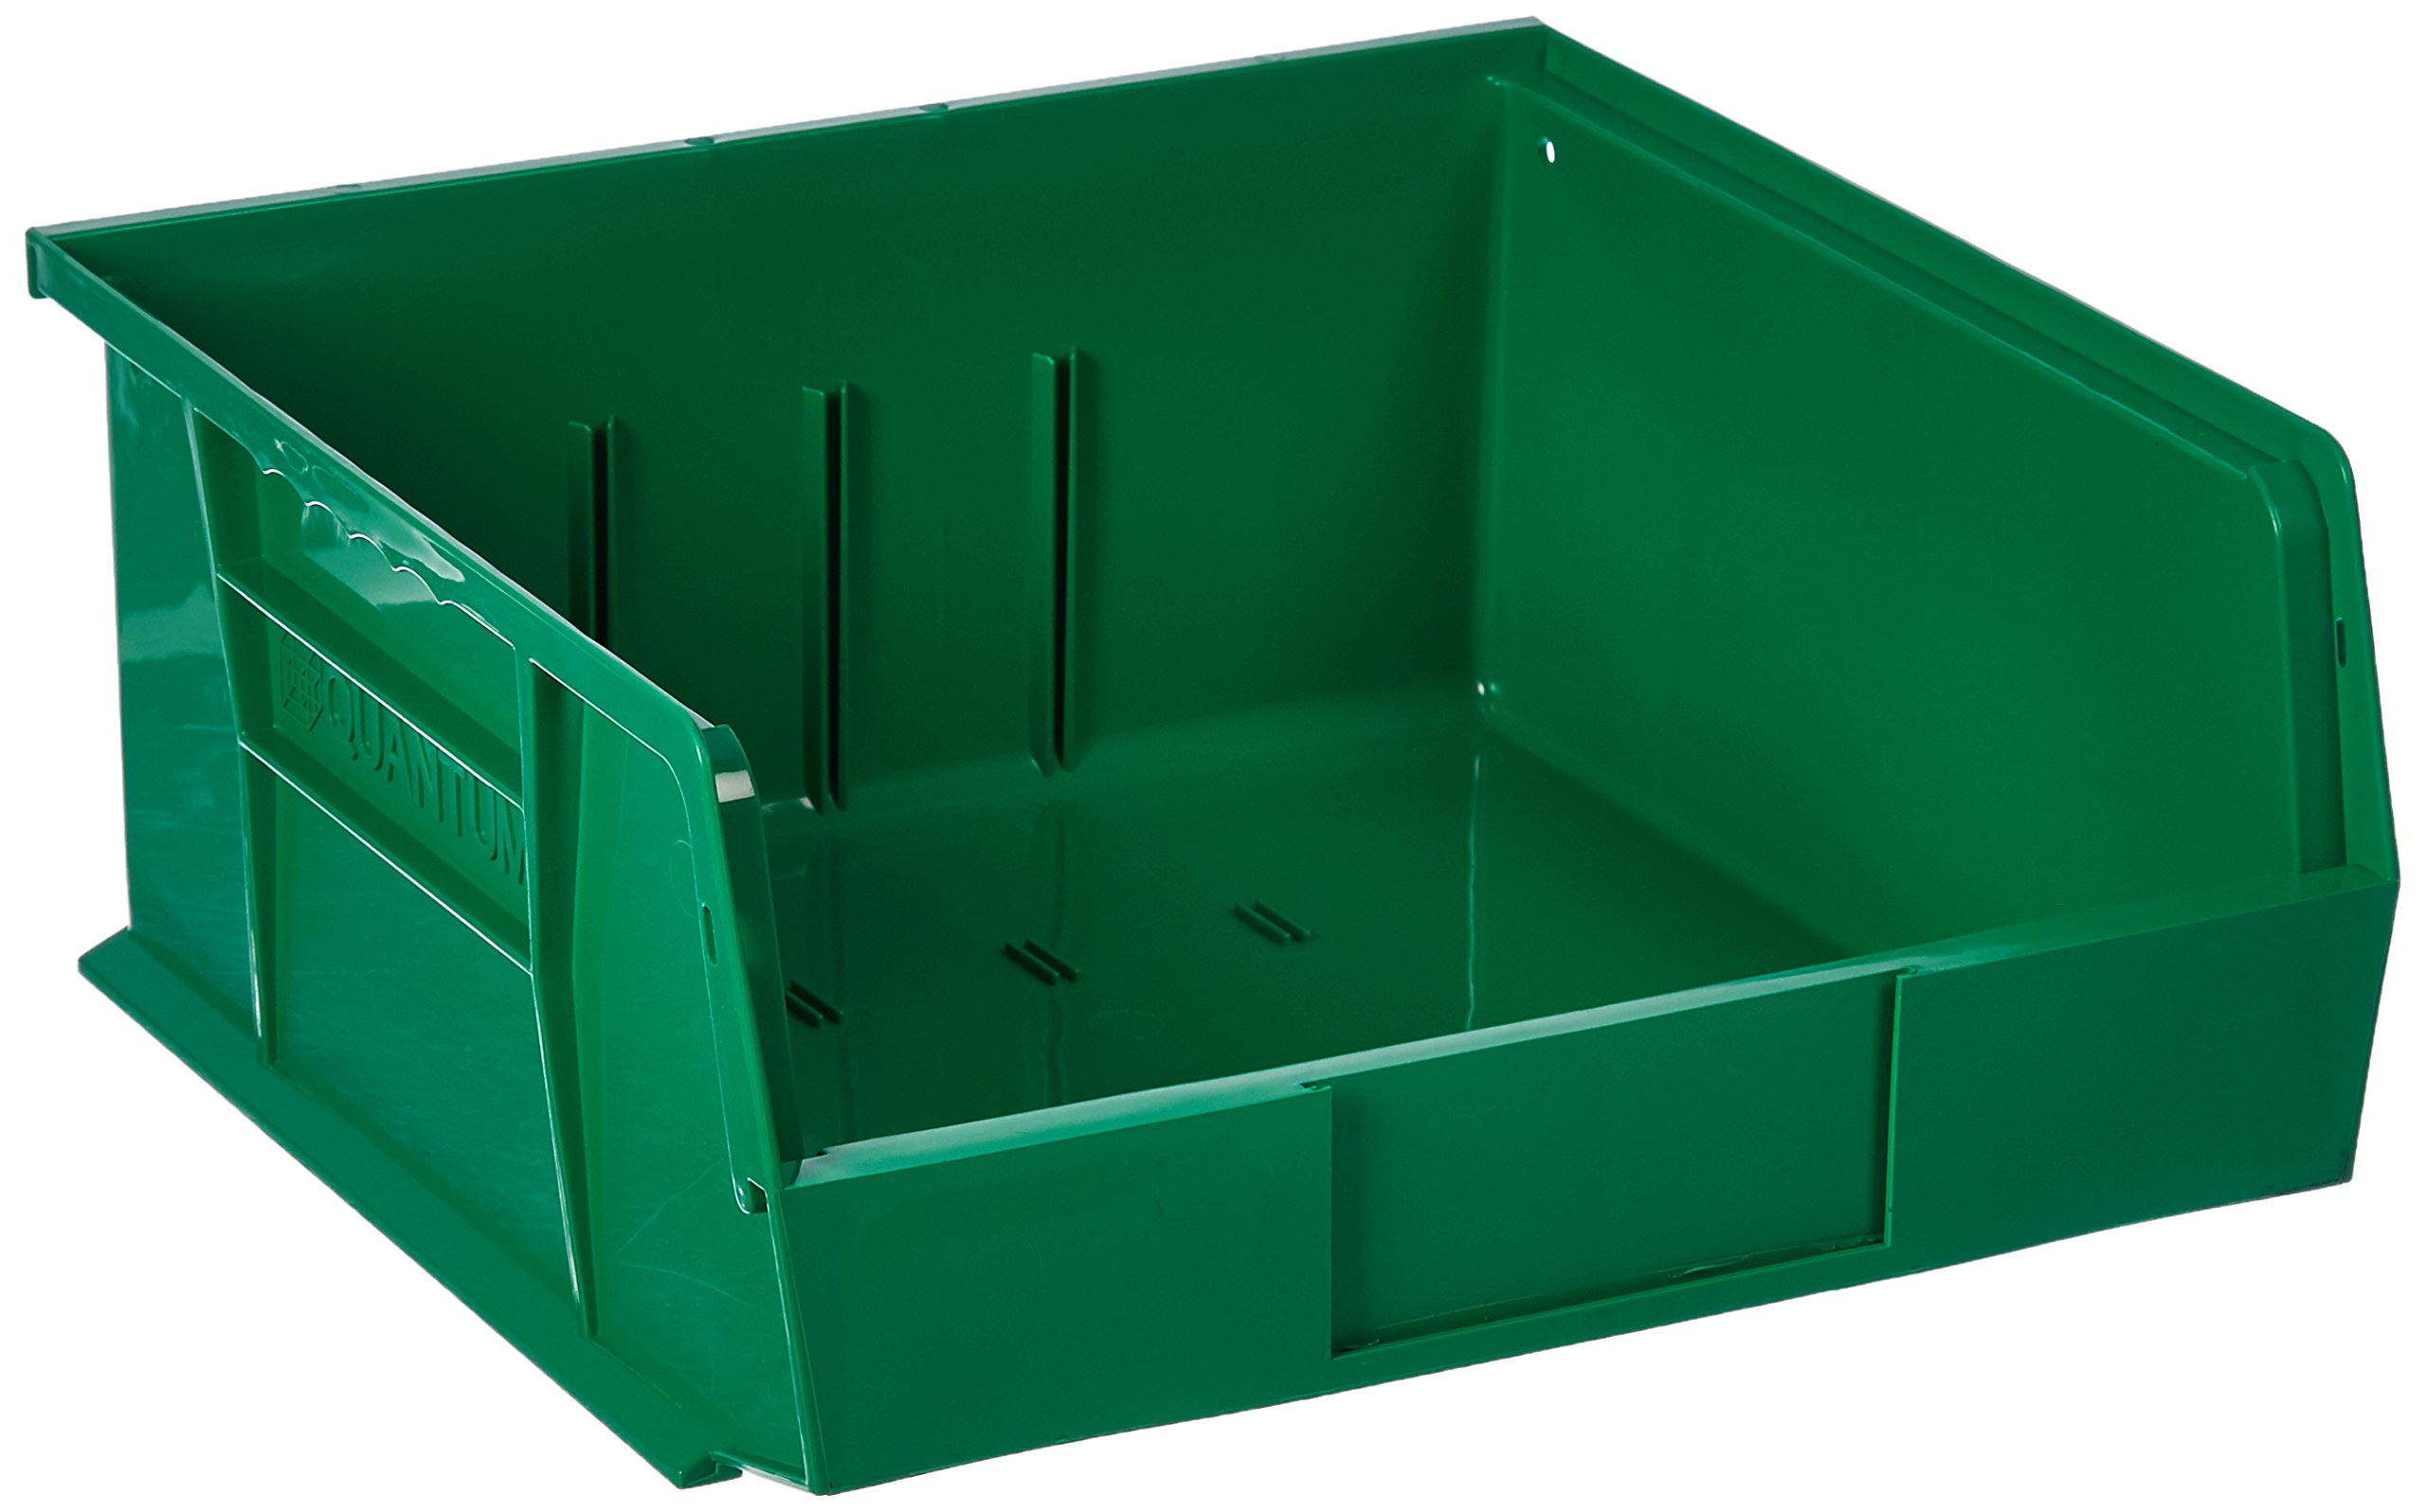 Quantum Storage Systems Hang/Stack Bin, 10-7/8L X 11W, Green by Quantum Storage Systems